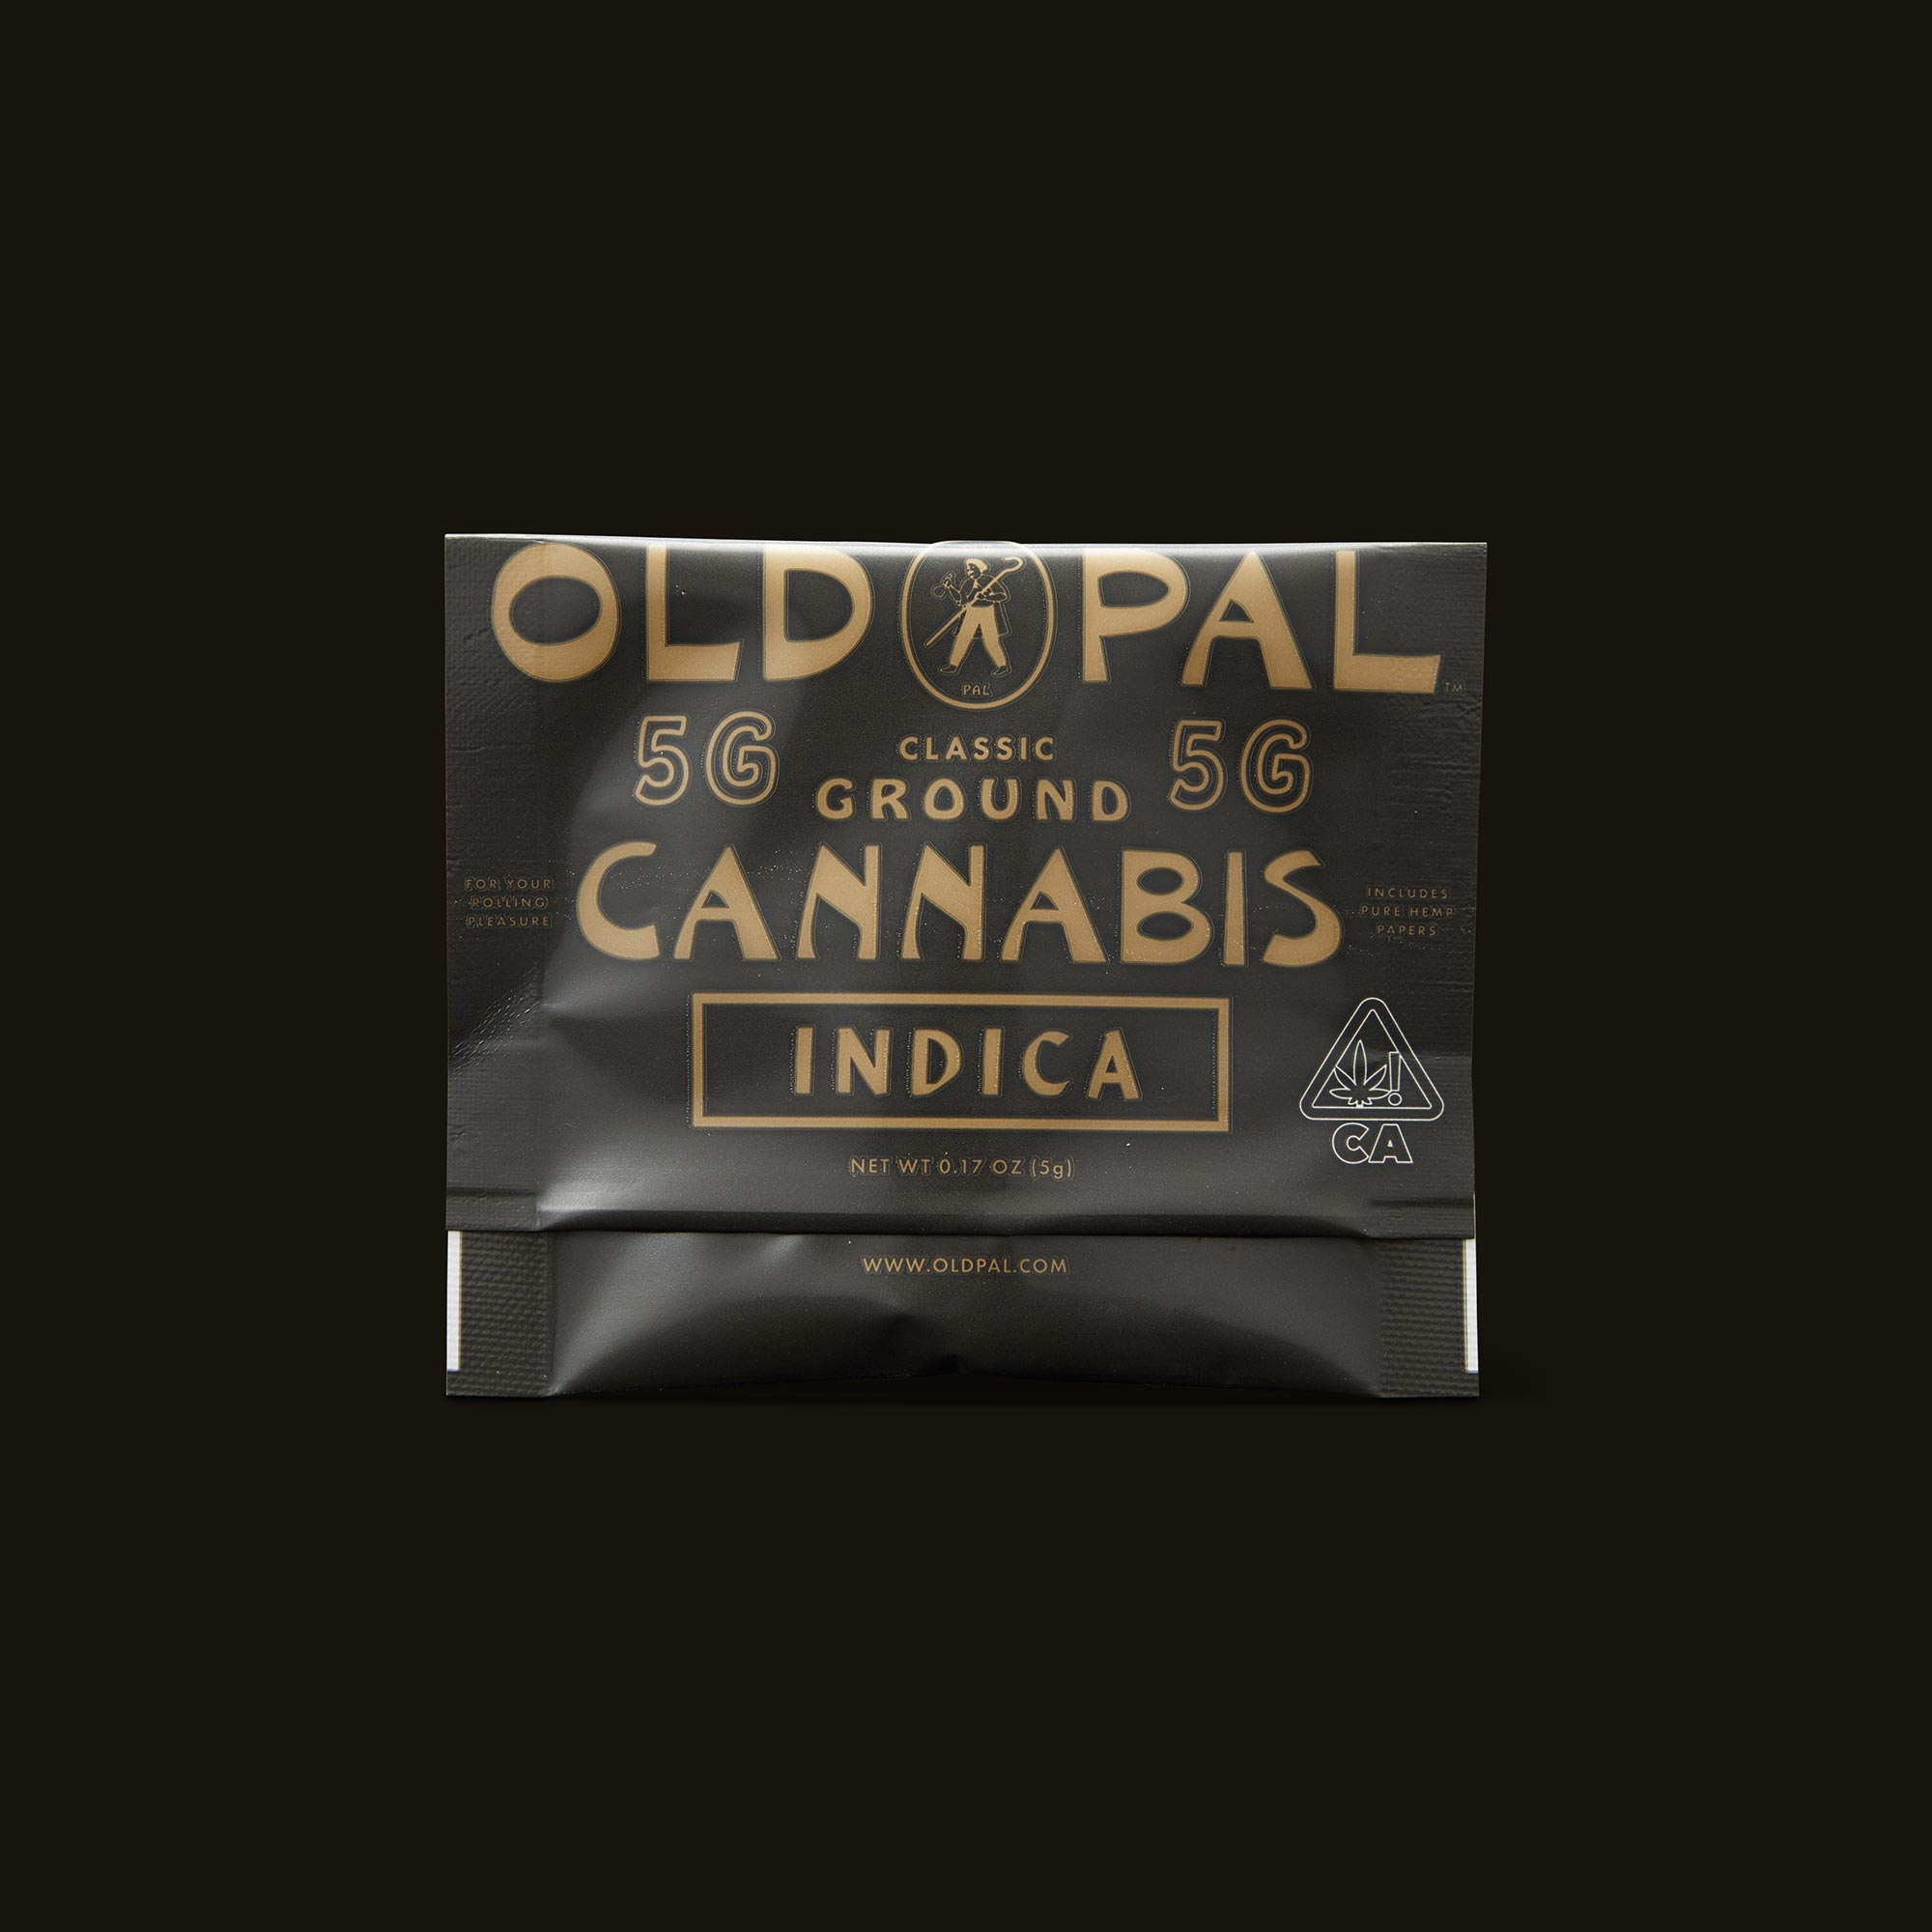 OLD PAL Indica 5g Ready to Roll Front Packaging